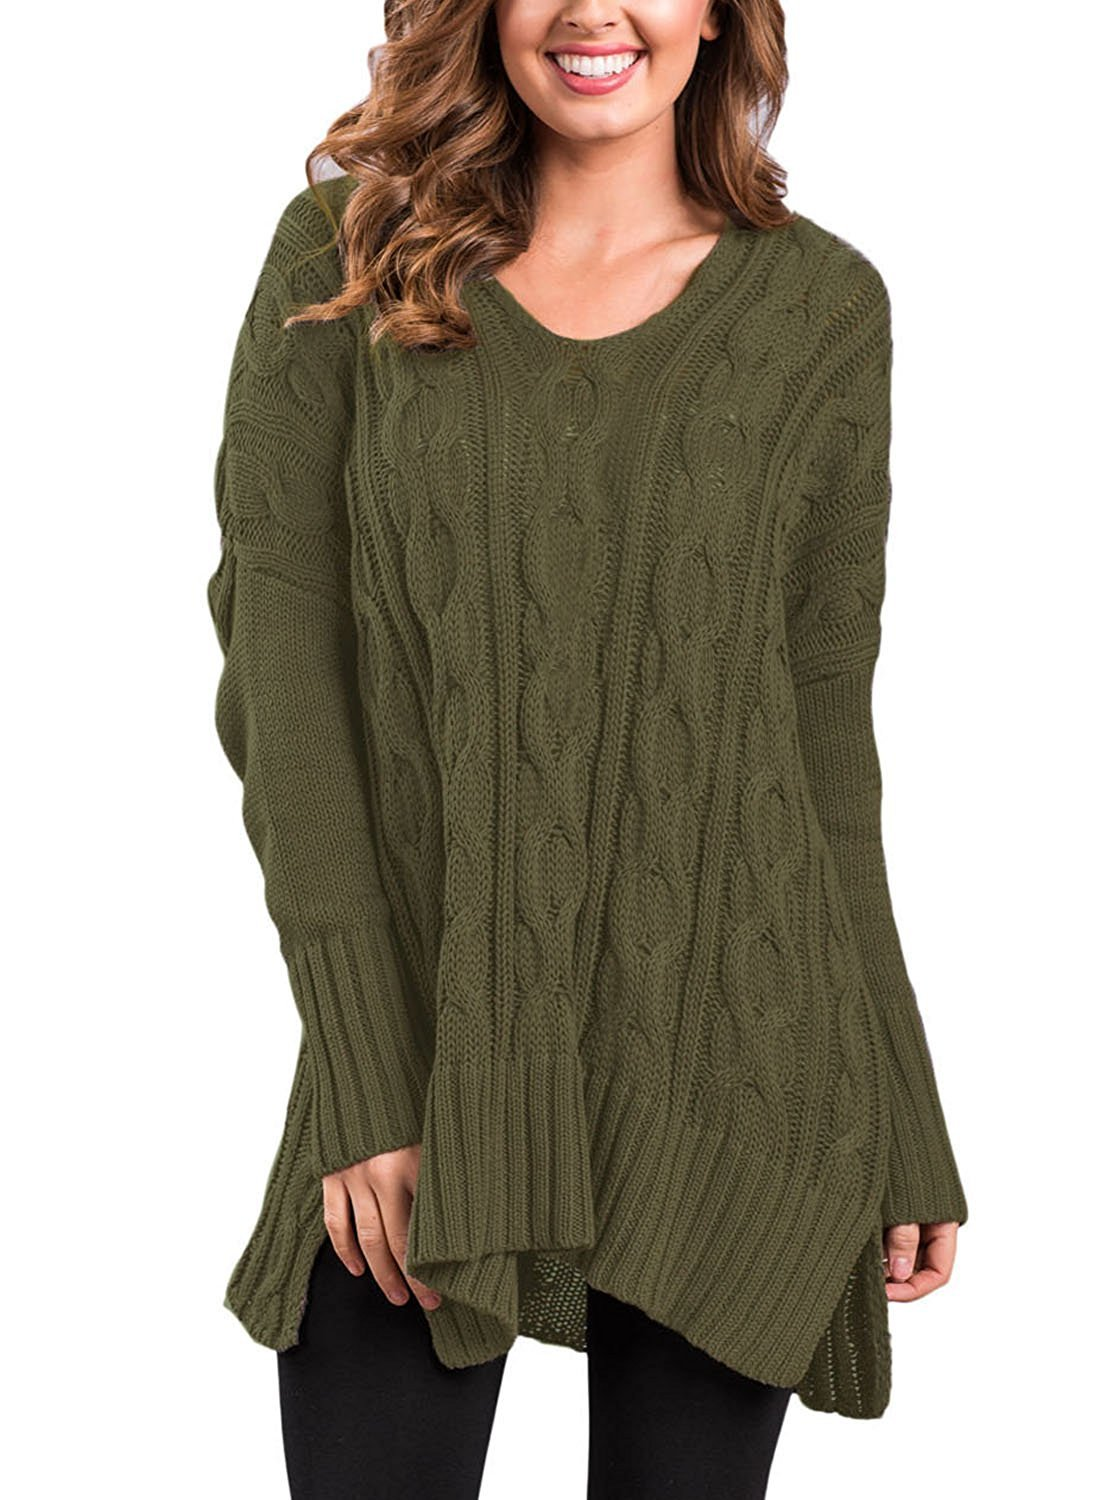 Haogo Womens Casual V Neck Long Sleeve Cable Knit Loose Pullover Sweater Green Medium by Haogo